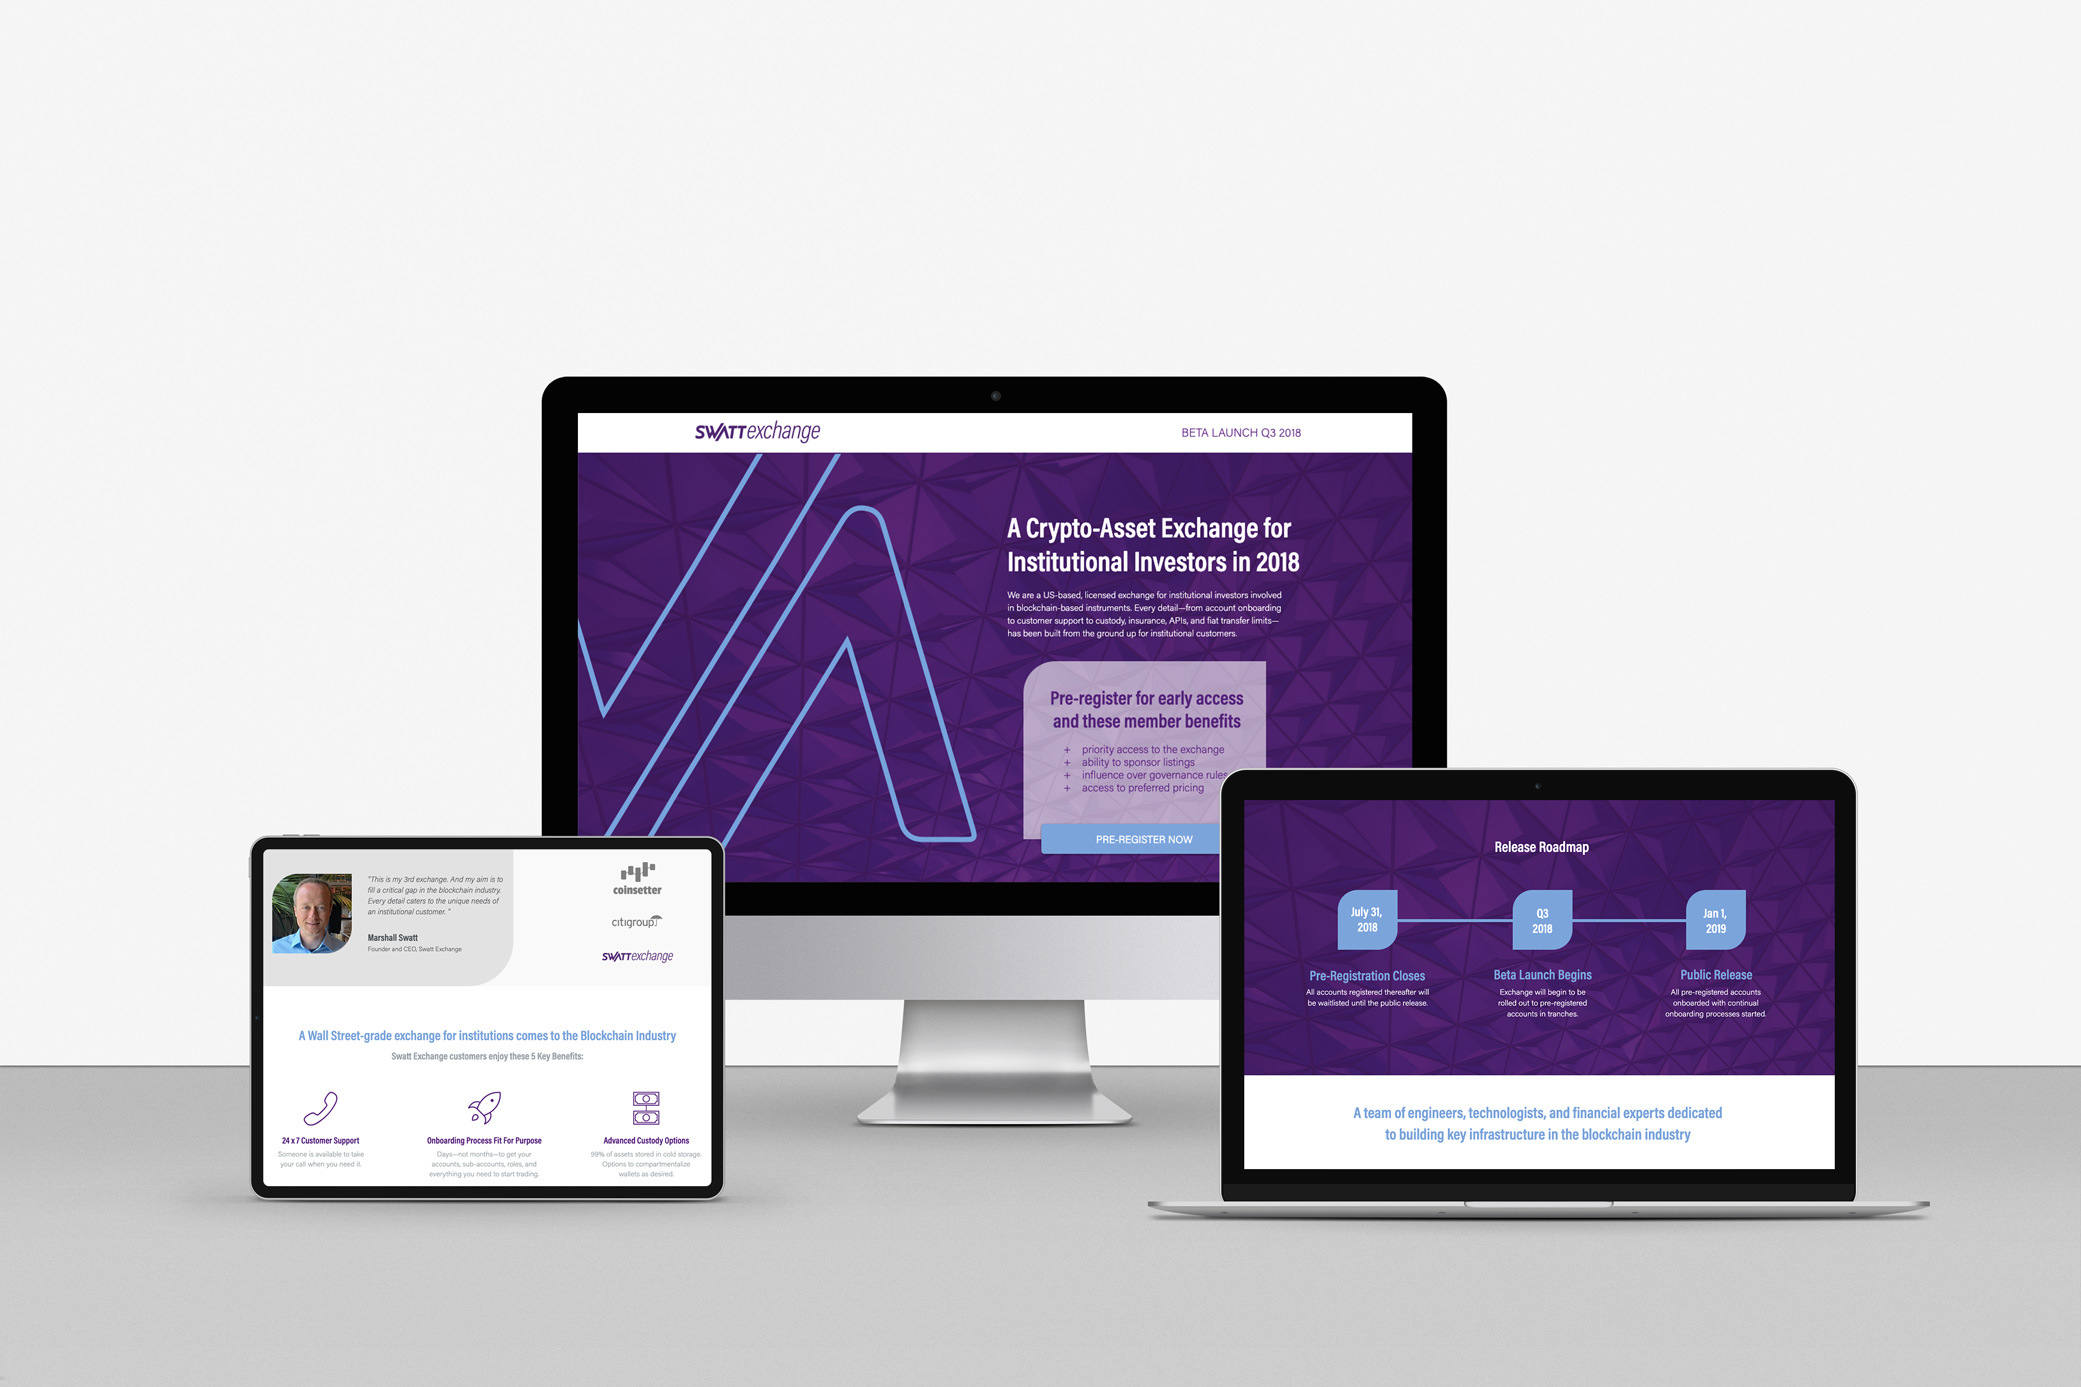 Swatt Exchange website design in vivid purple with white lettering and blue angle elements.